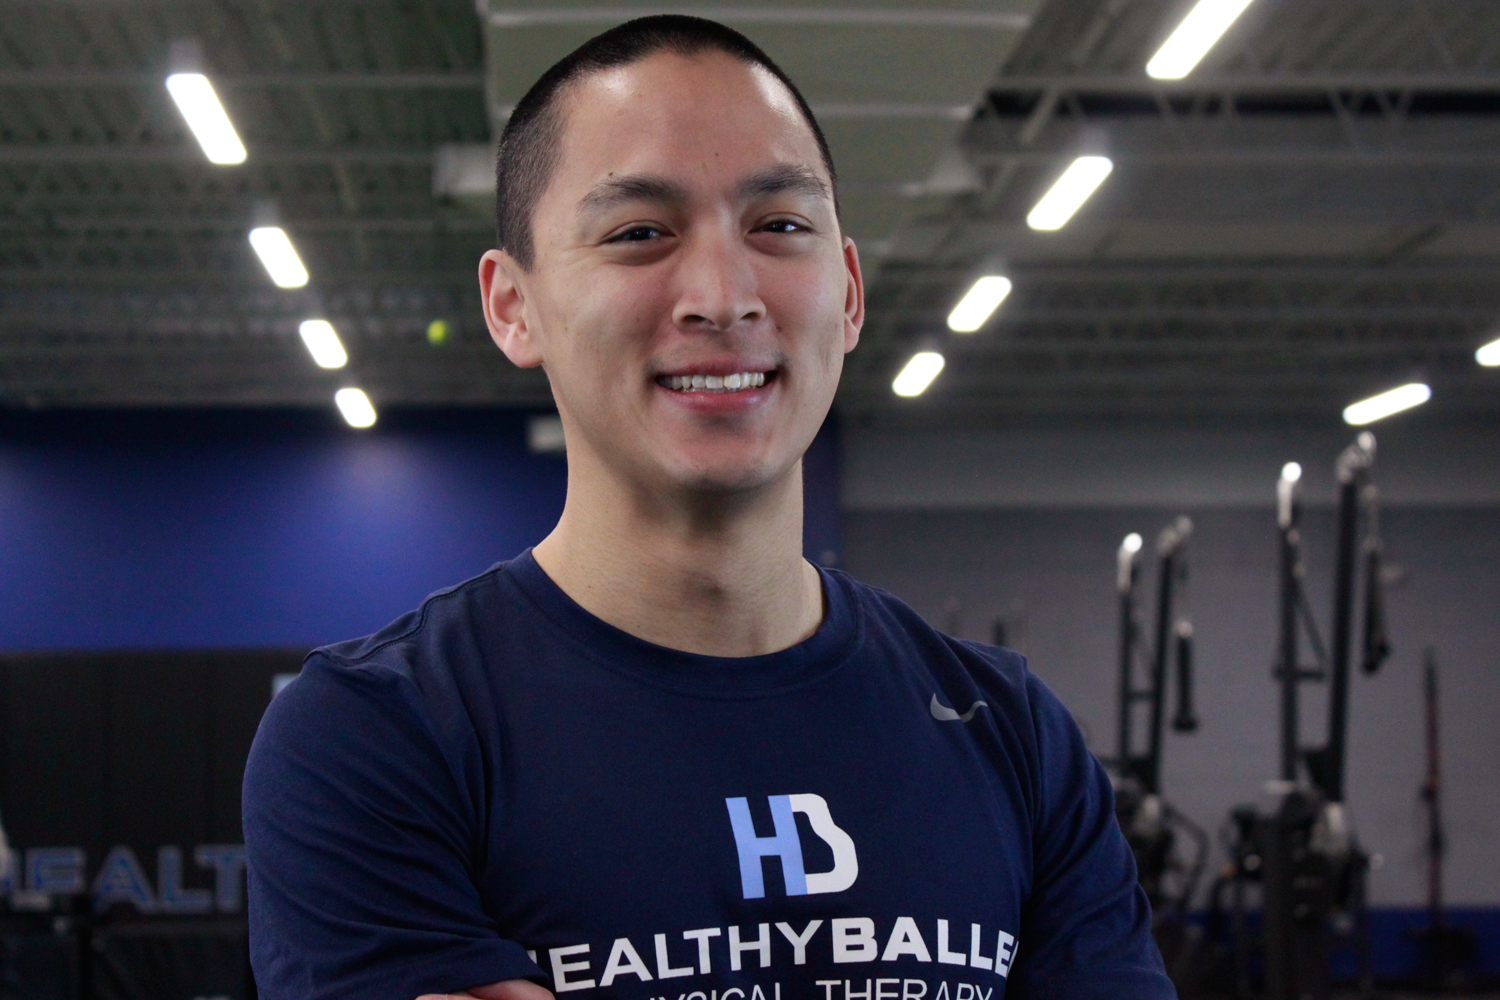 DR. WESLEY WANG, PT, DPT | LEAD PHYSICAL THERAPIST    @wesleywang.dpt   Wesley prioritizes building a trusting with each patient, while focusing on treating the source of the pain. He received his Doctor of Physical Therapy from Franklin Pierce University, and a B.A. in Economics from the University of Maryland.  Wesley works with athletes of all ages, and his treatment philosophy centers around movement, strengthening and patient education. He develops individualized treatment plans and strives to empower his patients, giving them the necessary tools to get back to their respective sports and daily activities. Having personally suffered 2 ACL tears from playing basketball, Wesley's treatments prioritize regaining full mobility, strength and confidence to reduce the likelihood of suffering another injury.